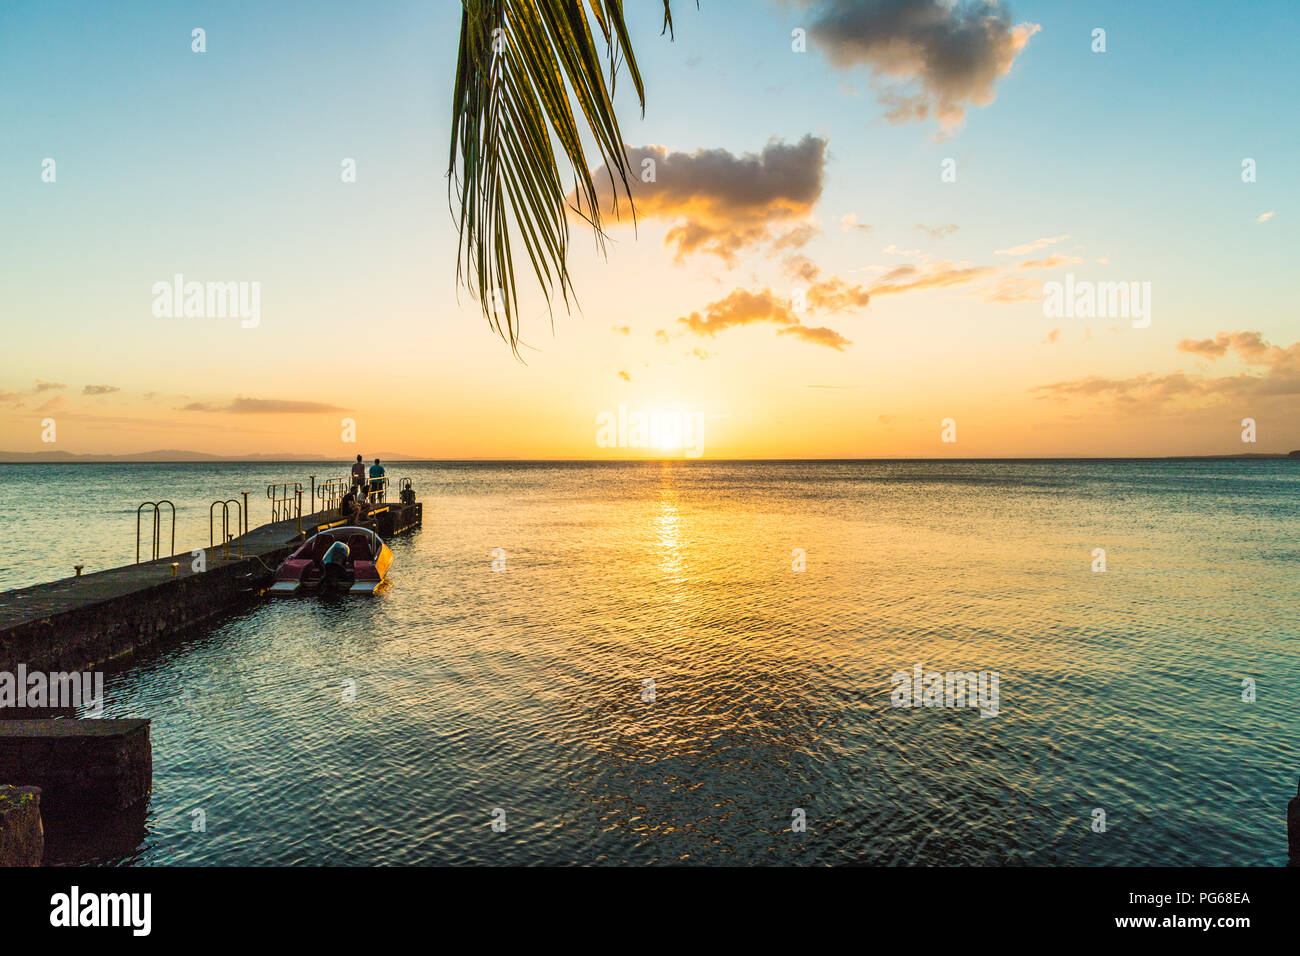 A typical view on lake Nicaragua on Ometepe in Nicaragua - Stock Image